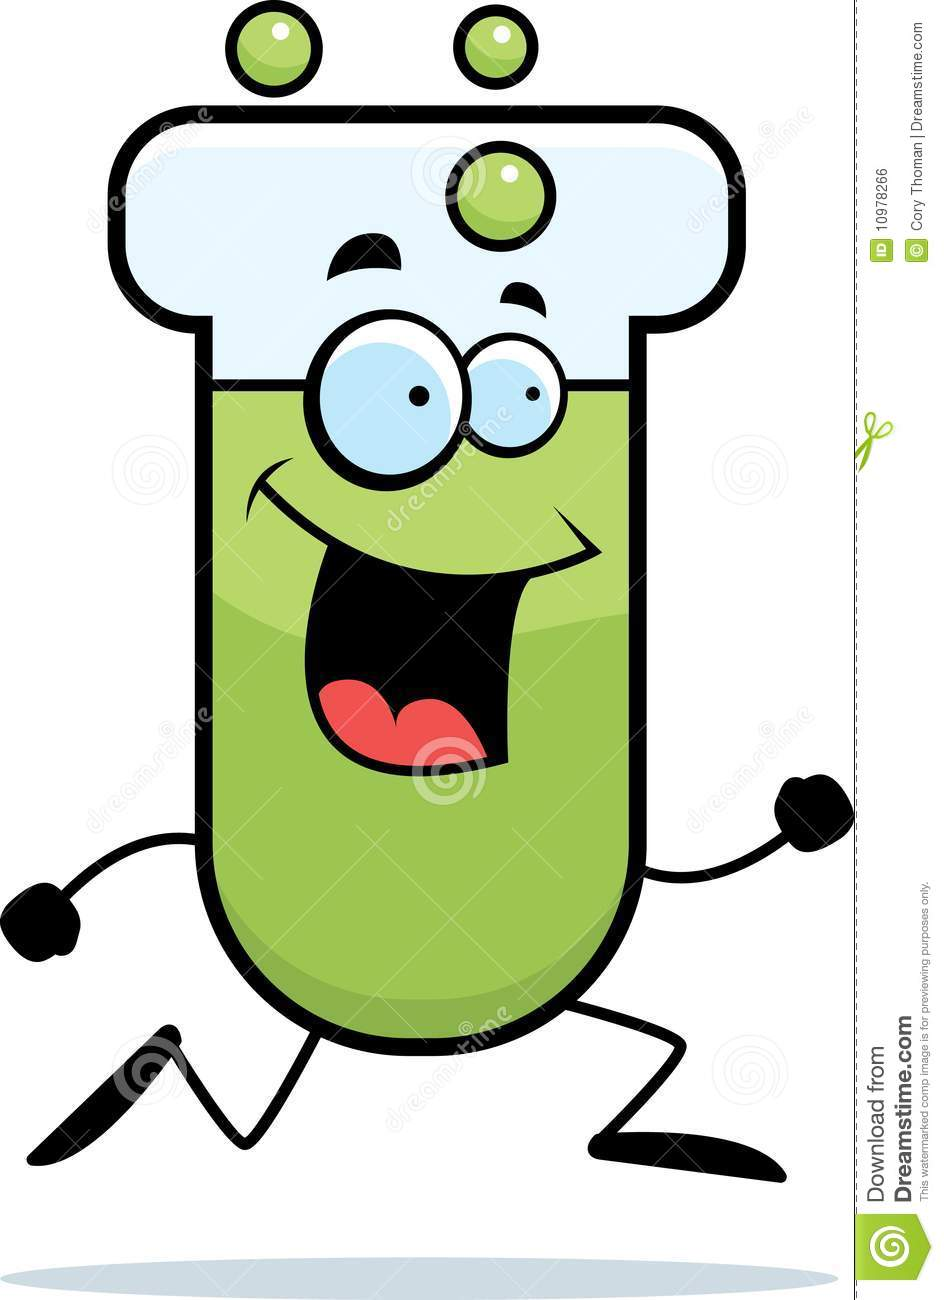 Empty Test Tube Clipart | Clipart Panda - Free Clipart Images